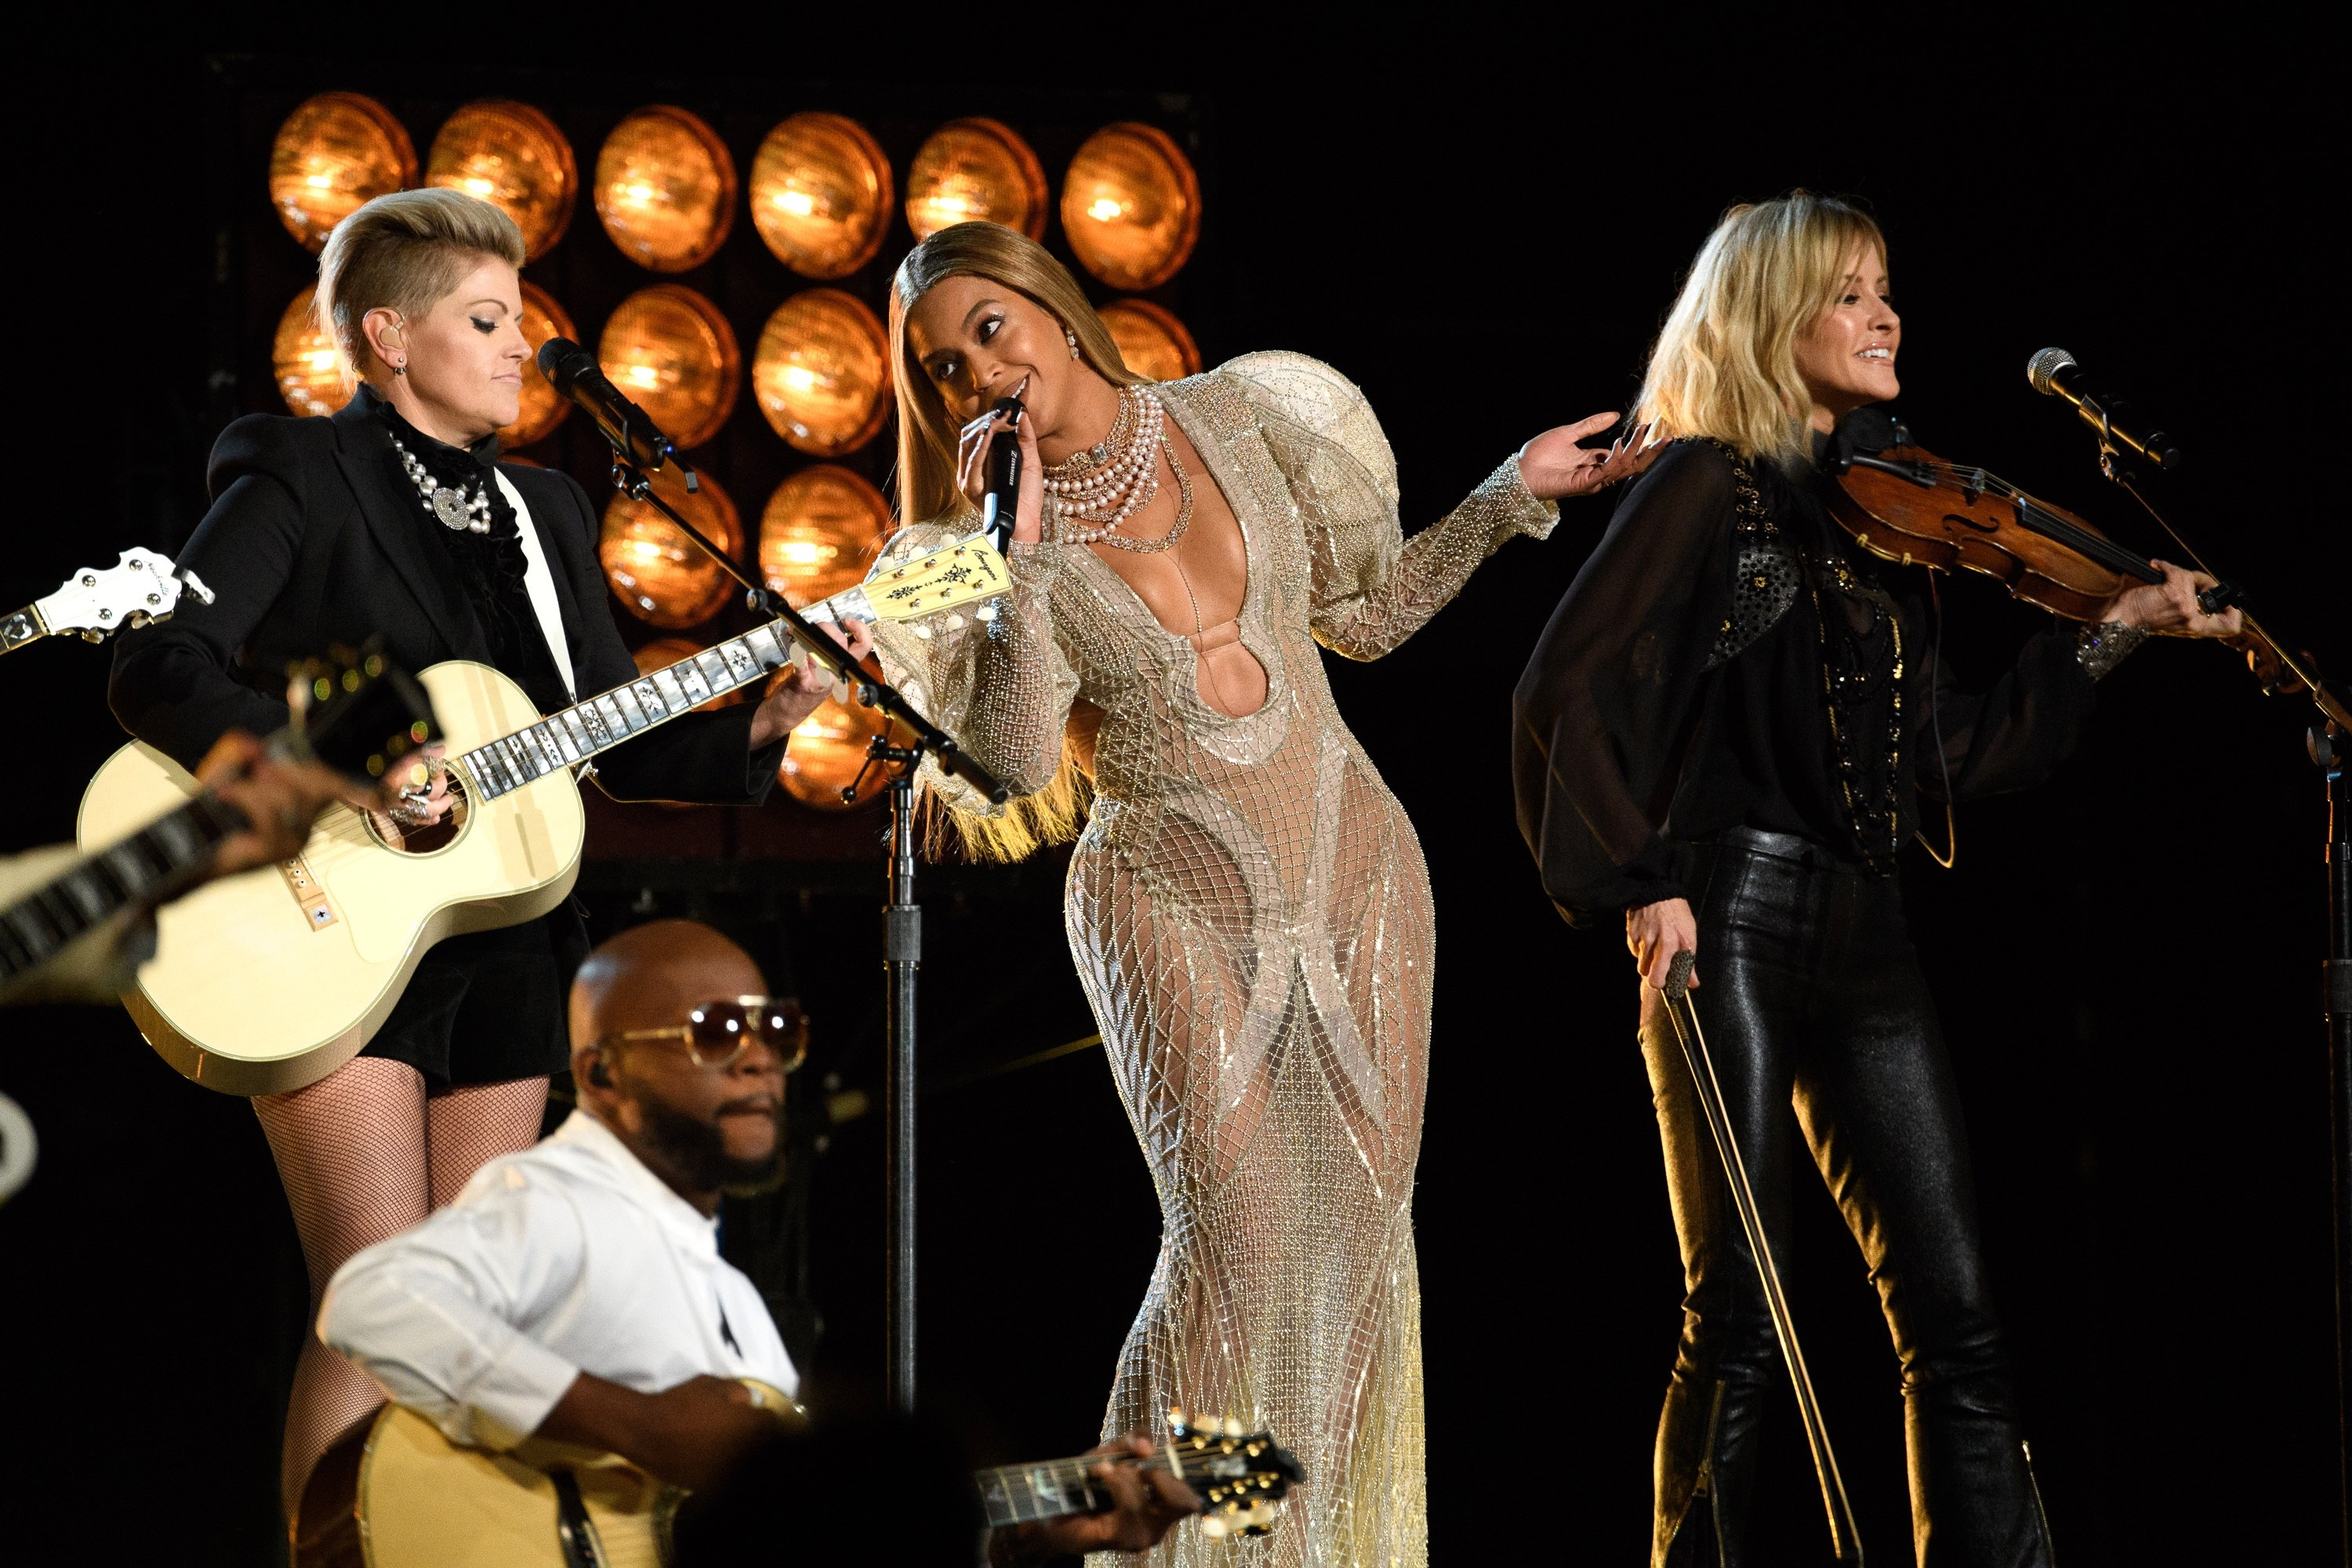 Beyonce performs with the Dixie Chicks at CMA AwardsNov 2, 2016